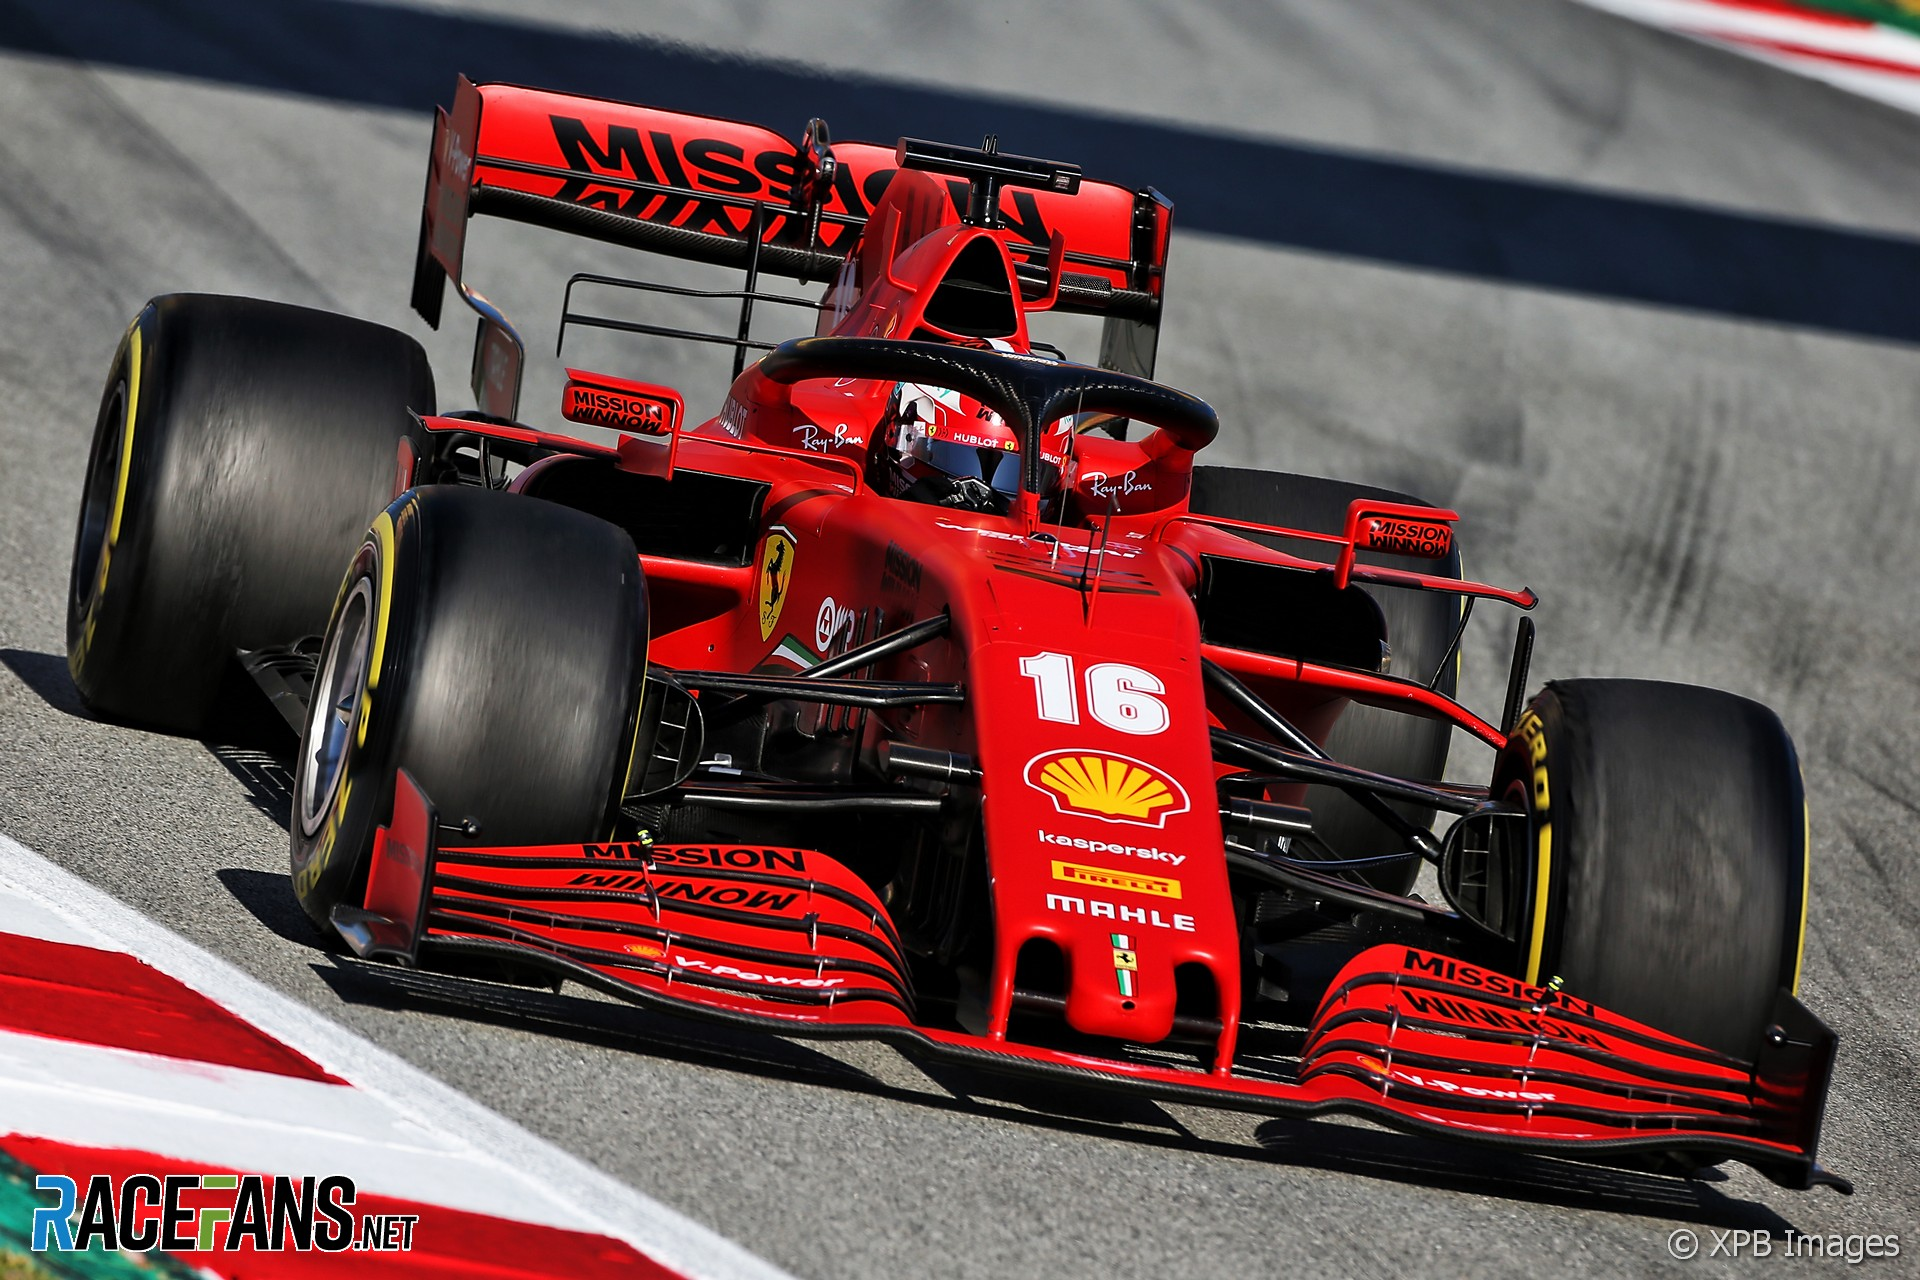 FIA reaches agreement with Ferrari after power unit investigation · RaceFans